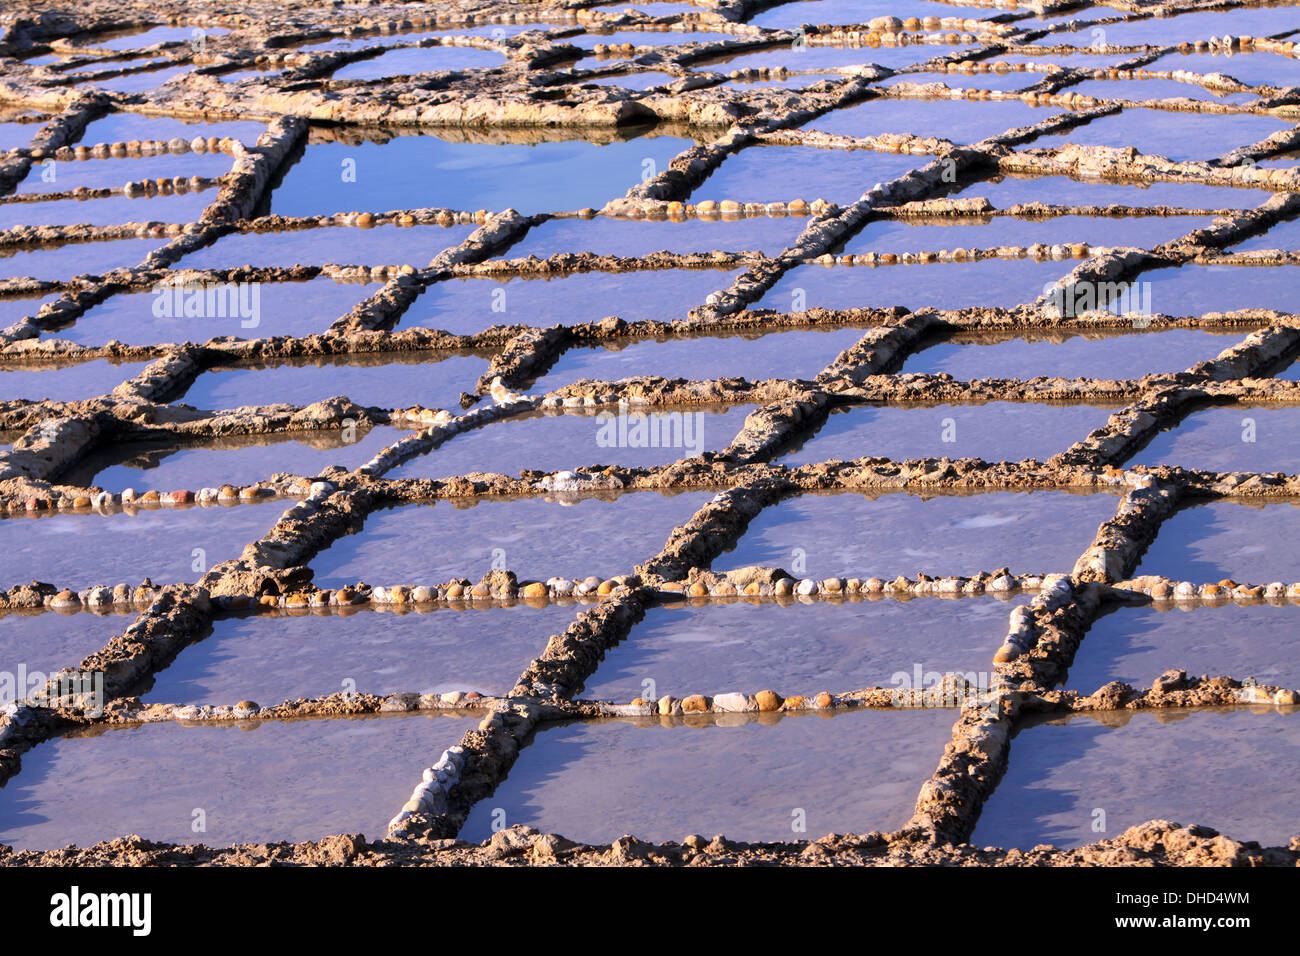 Salt works in the rocks - Stock Image